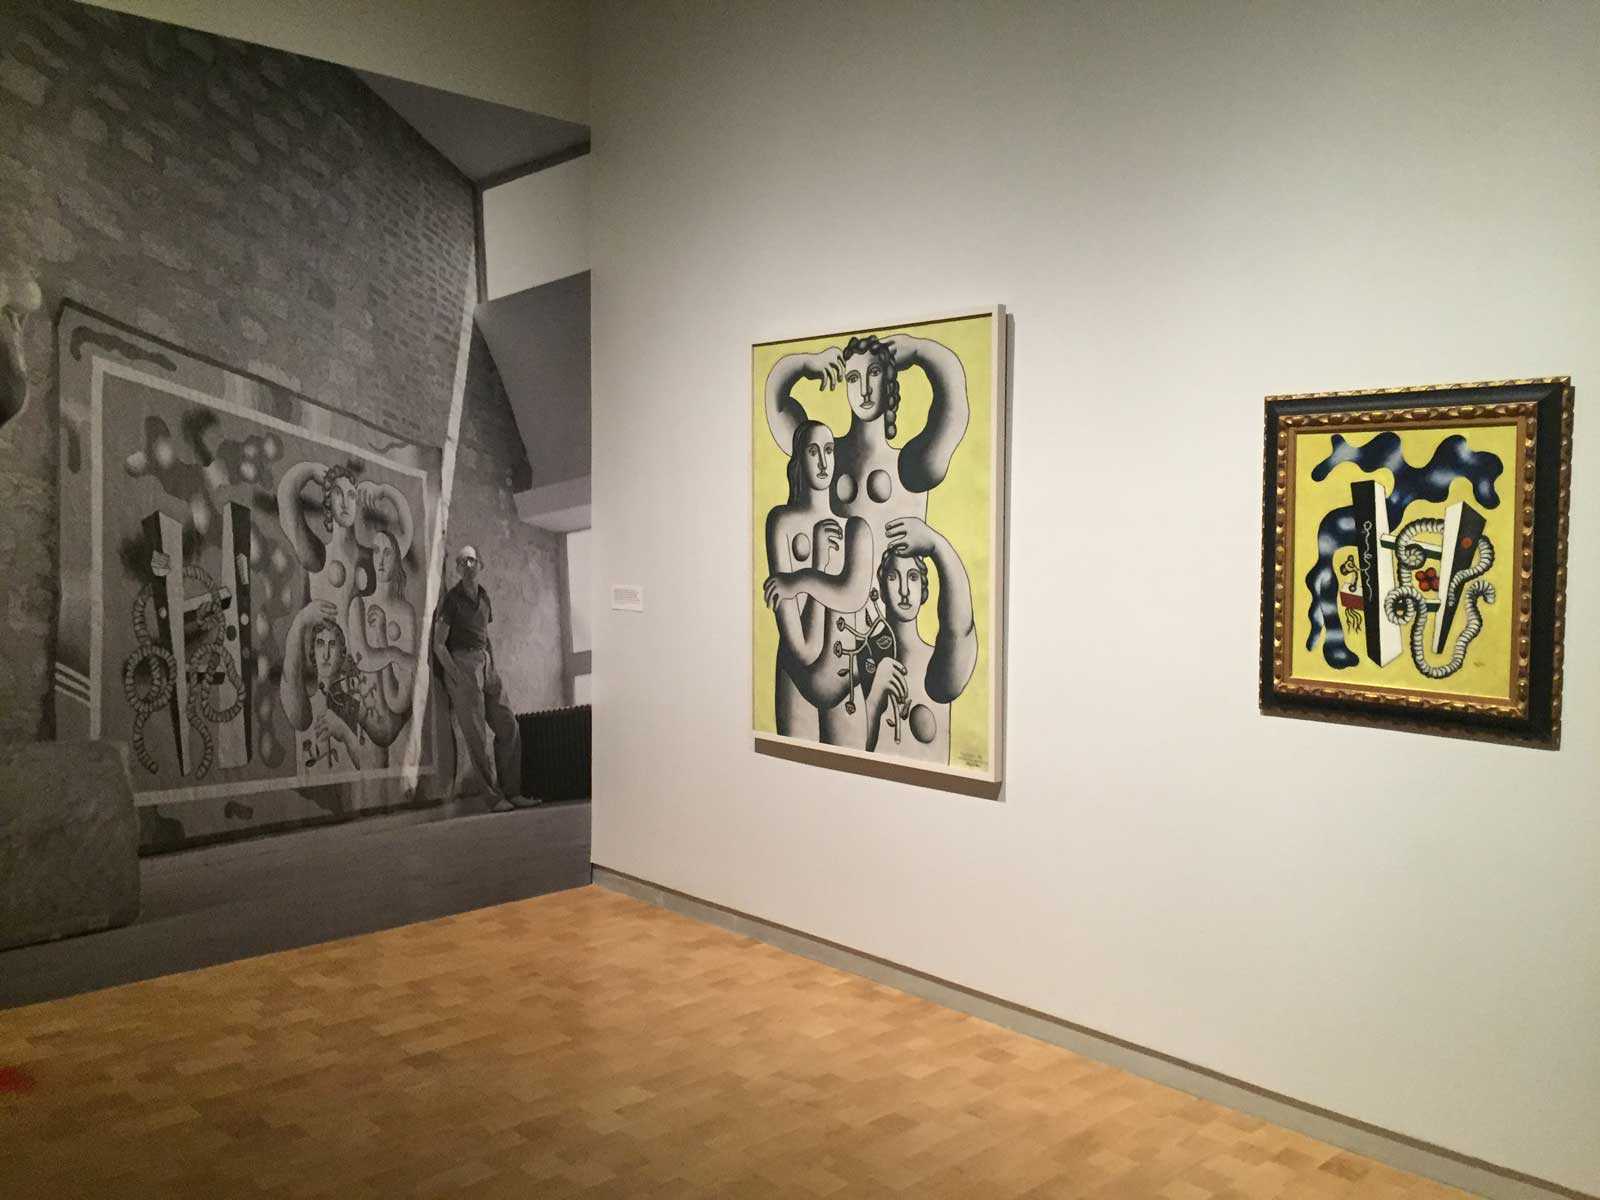 The Barnes Foundation presented an exhibition of 20th century art from the Marie Cuttoli collection